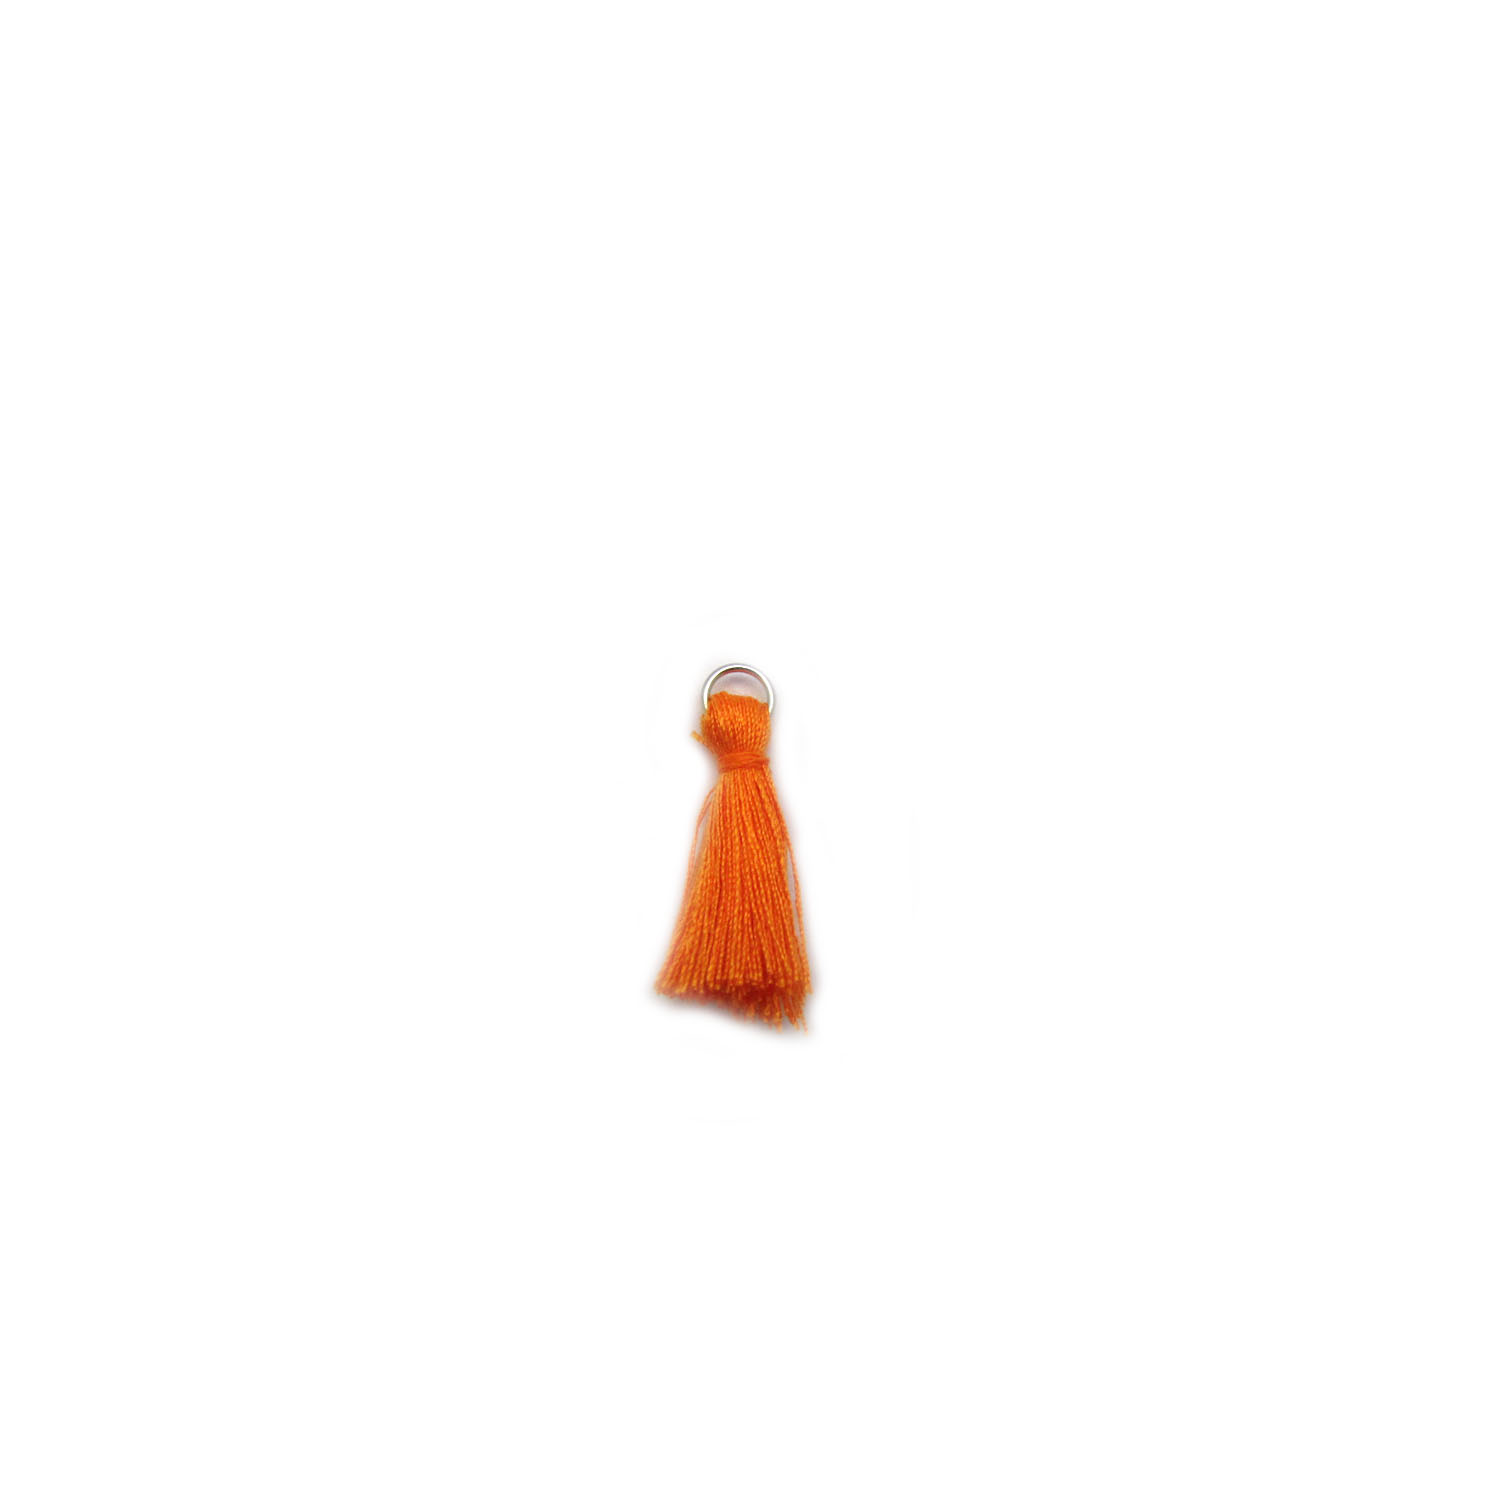 3cm cotton tassel with base metal silver jump ring - orange